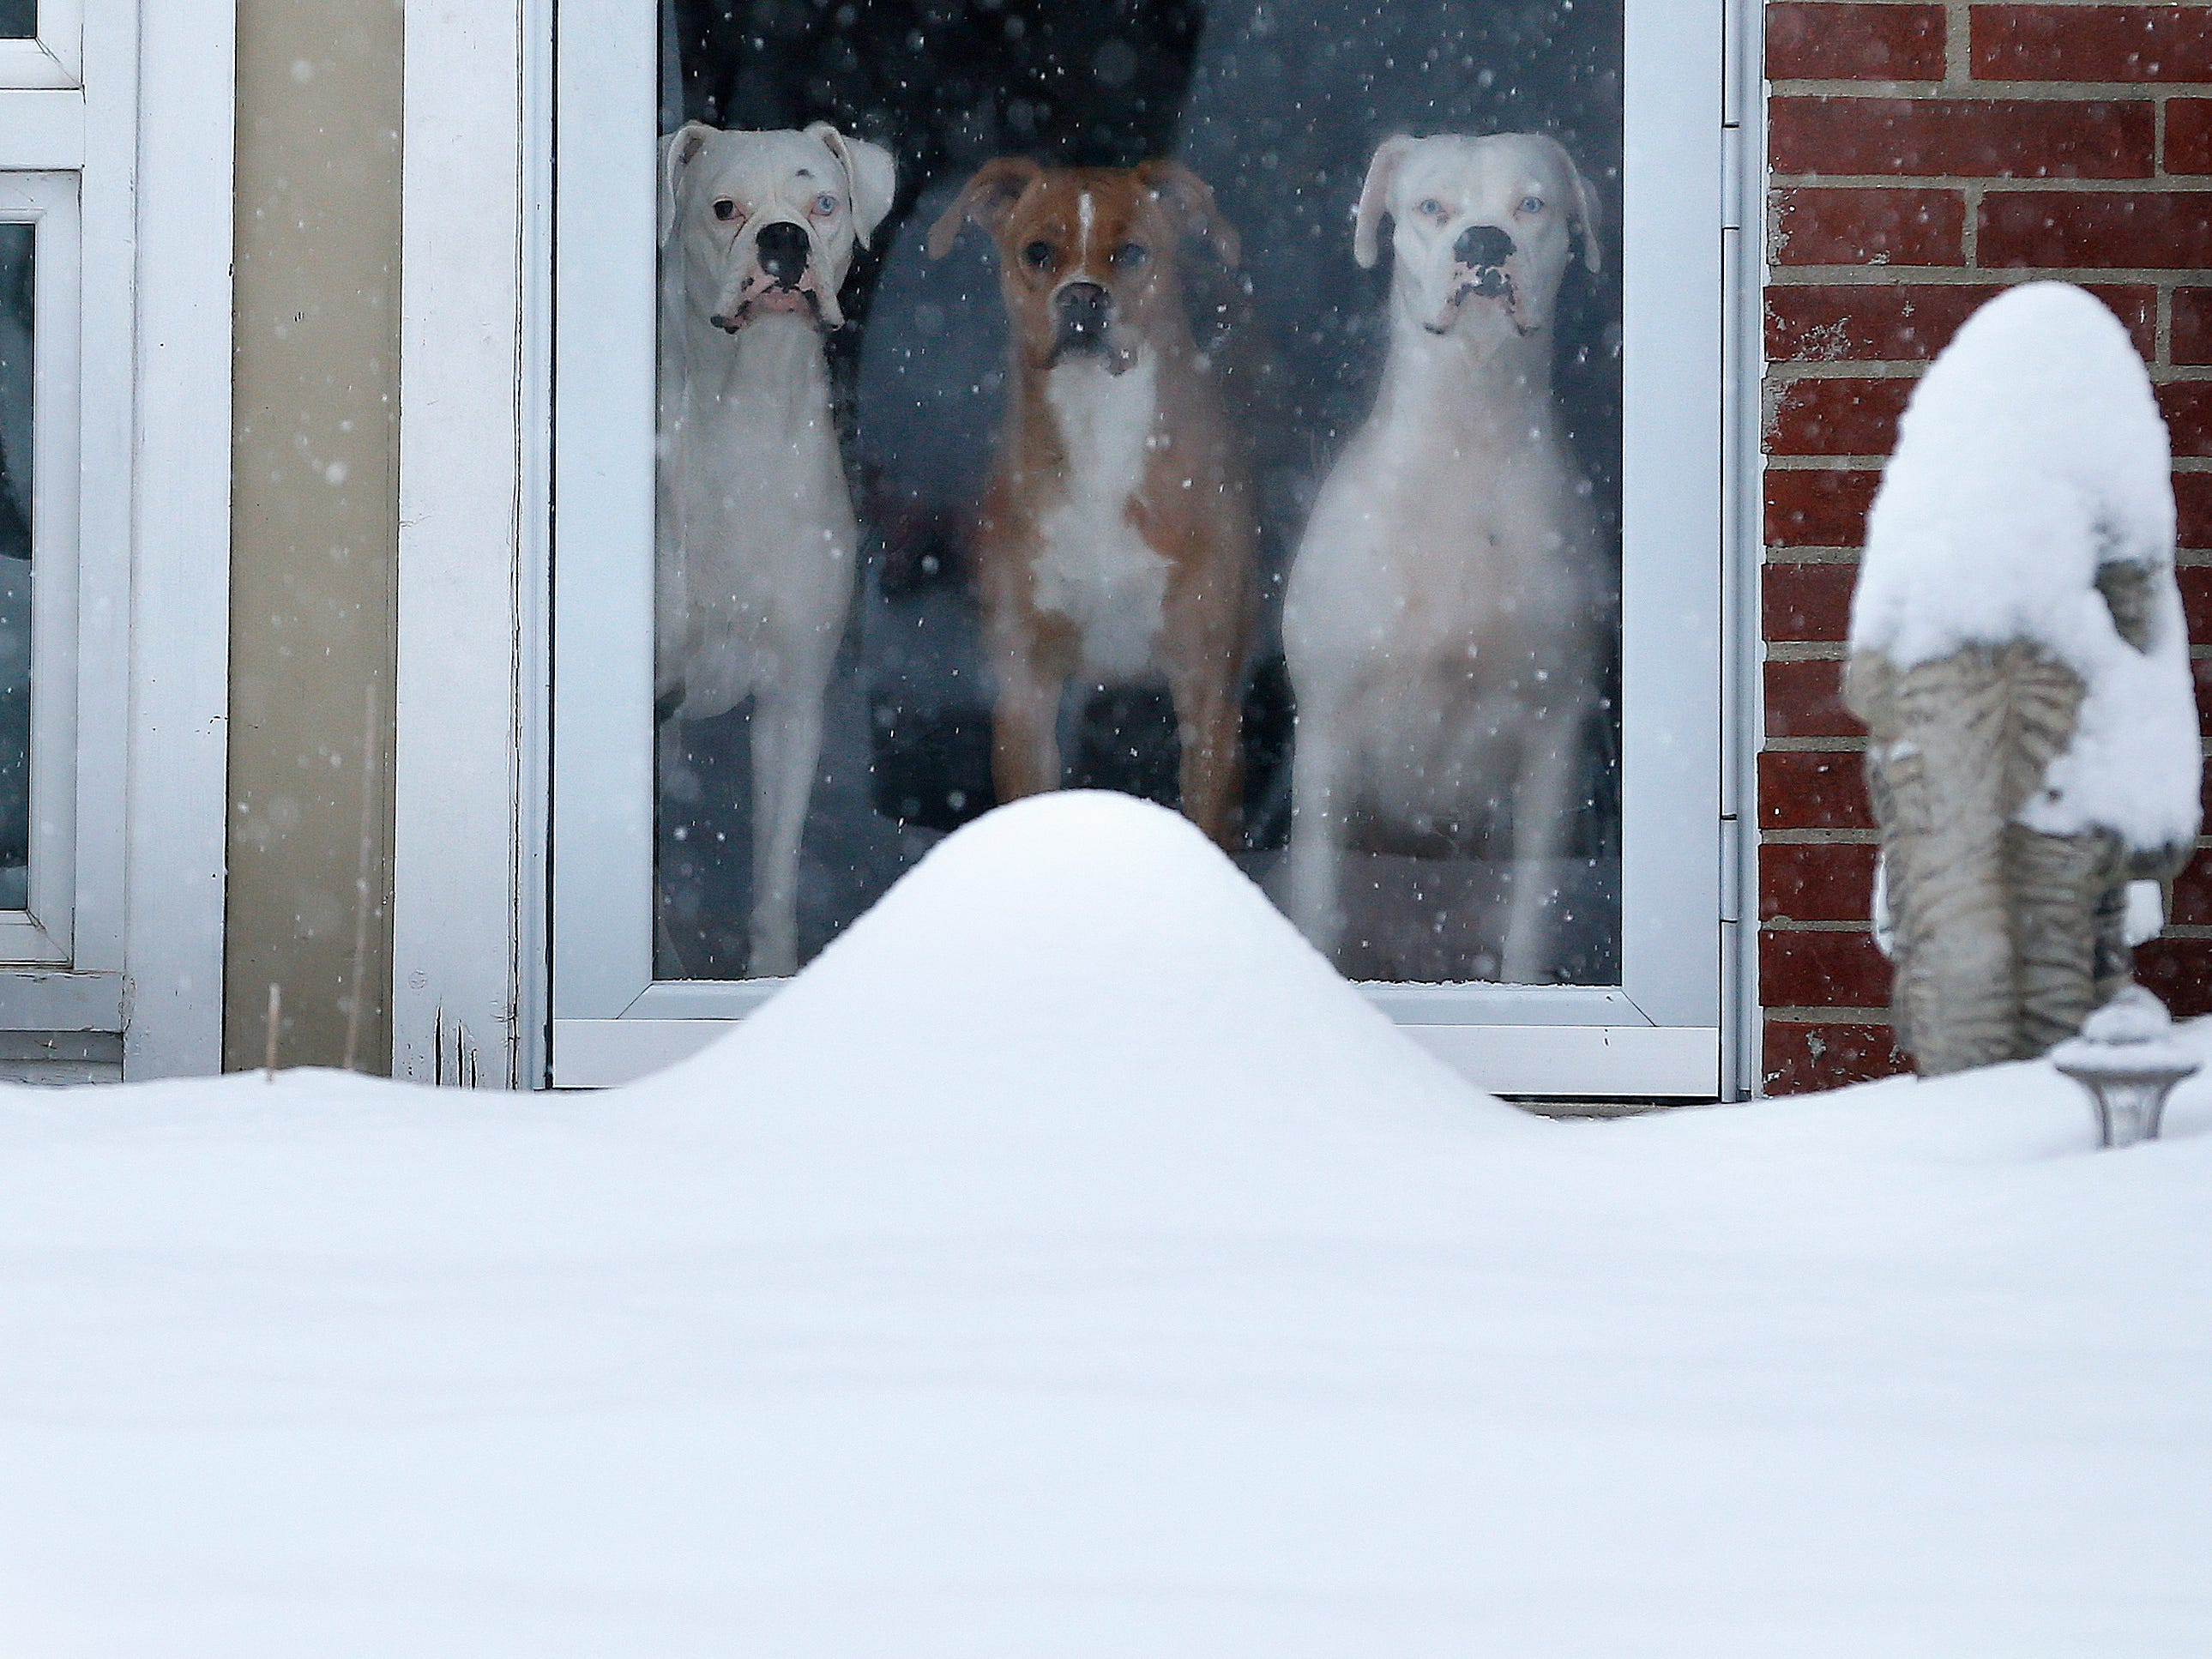 Three dogs look out at the snow from their Forest Park home Sunday January 13, 2019. Snow overnight and this morning brought a new layer of snow and is resulting in closings and delays. The National Weather Service at Wilmington said the winter storm warning is in effect for portions of Southeast Indiana, Northern Kentucky and South Central and Southwest Ohio. (Via OlyDrop)